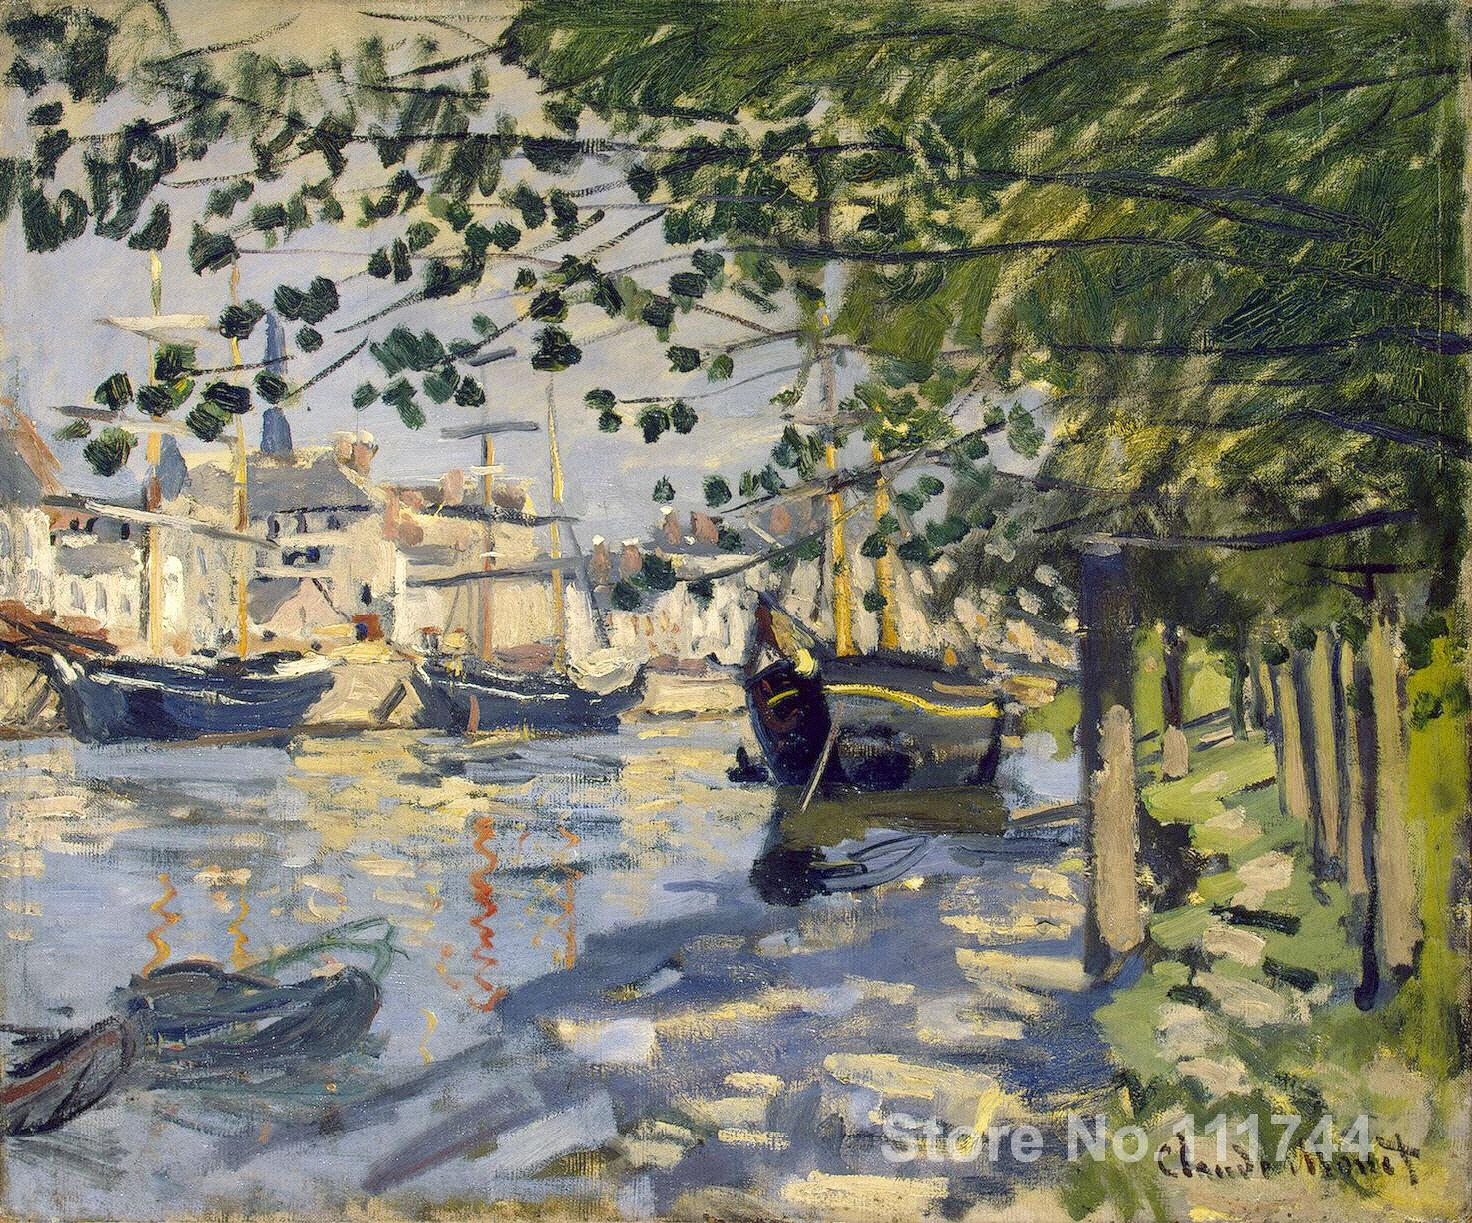 buy a painting,Seine at Rouen-Claude Monet,home decor,High quality,Hand-painted(China (Mainland))